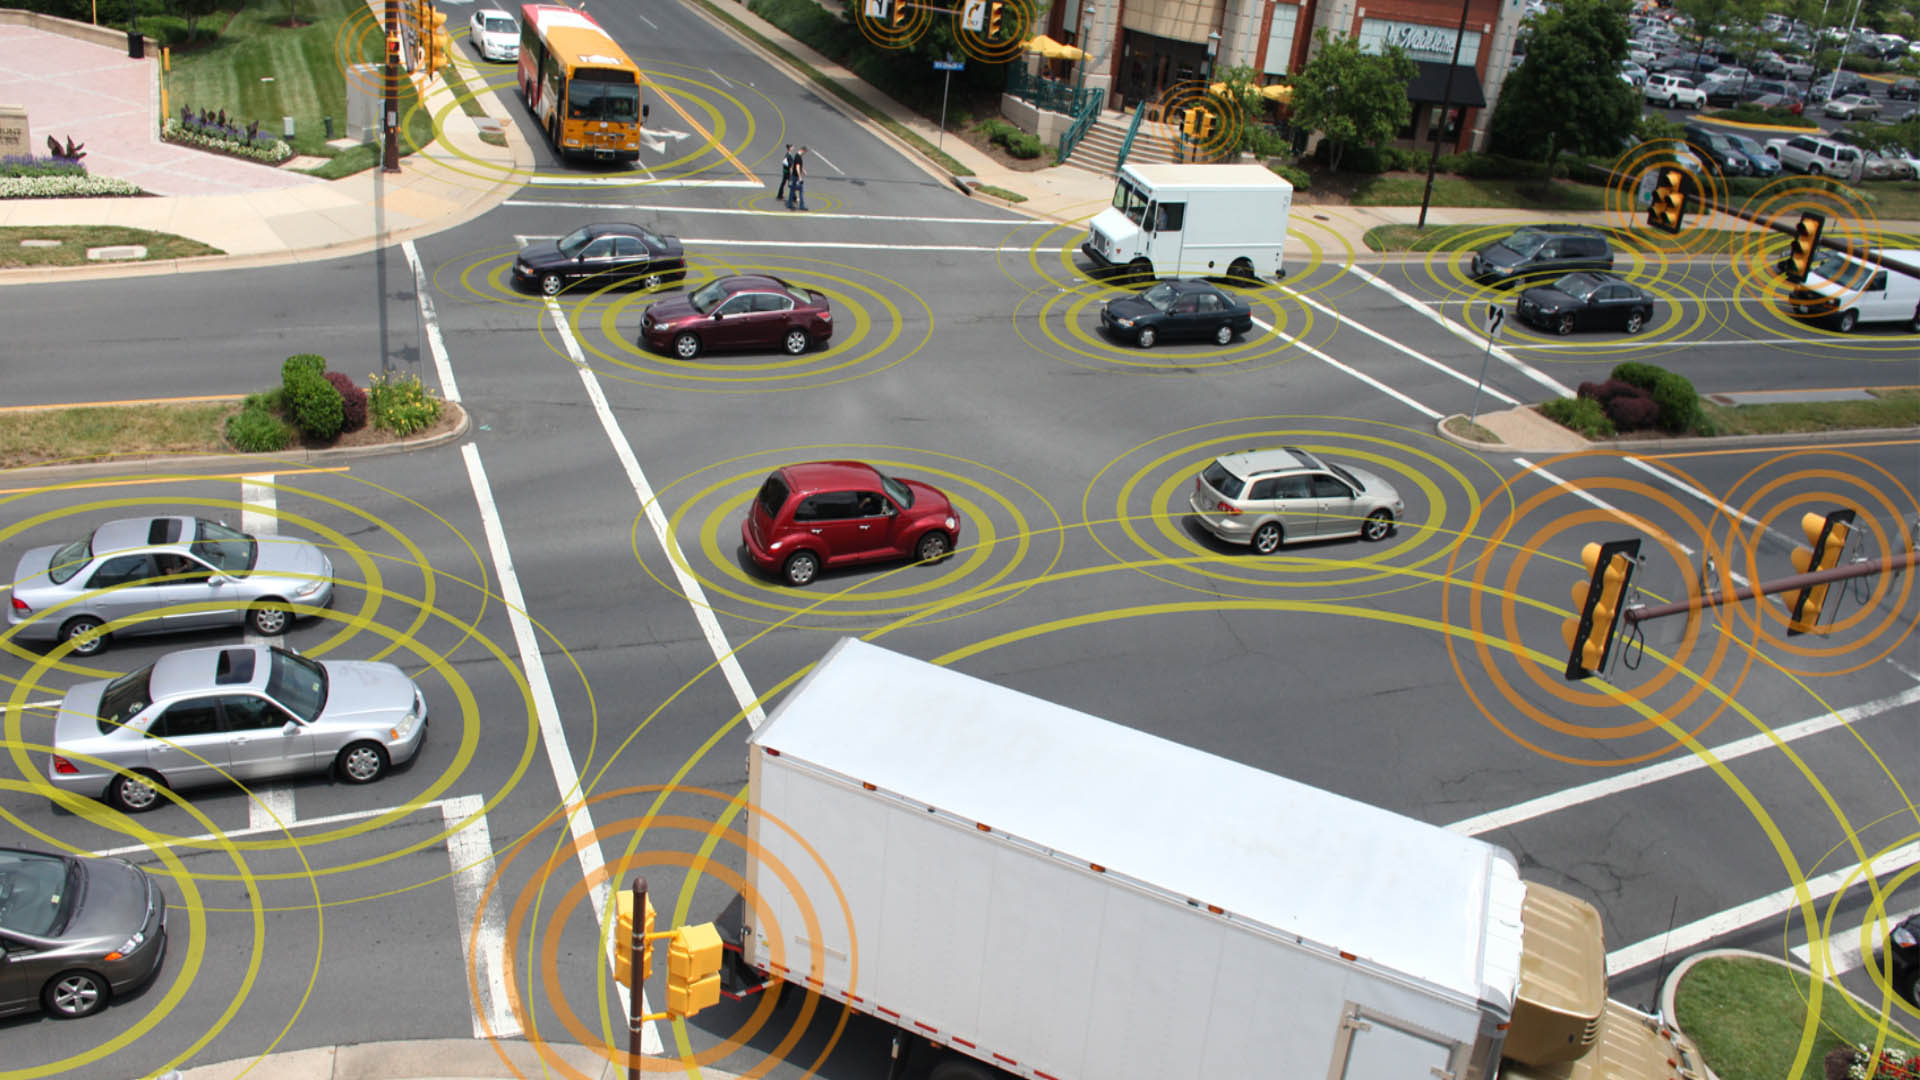 Free Webinar: Public Communication Aspects of Deploying Connected and Automated Vehicles